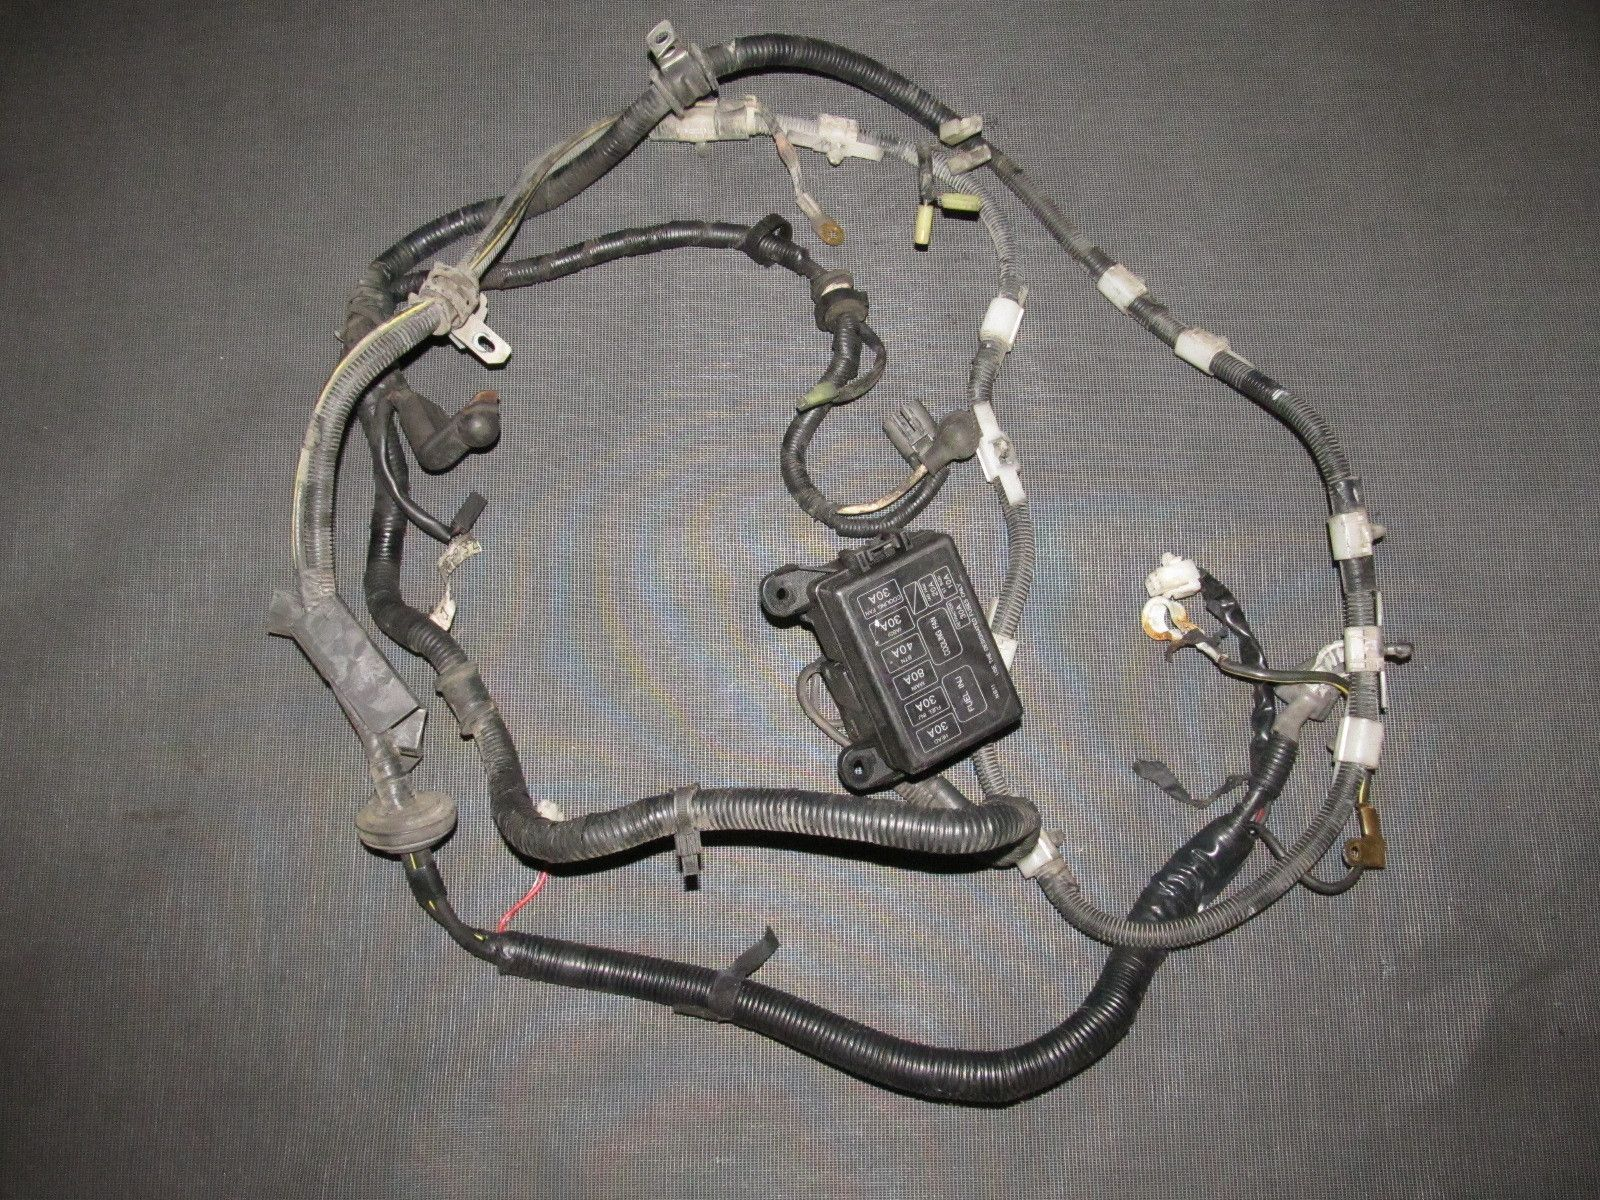 94 95 96 97 mazda miata oem battery starter alternator wiring m t harness [ 1600 x 1200 Pixel ]